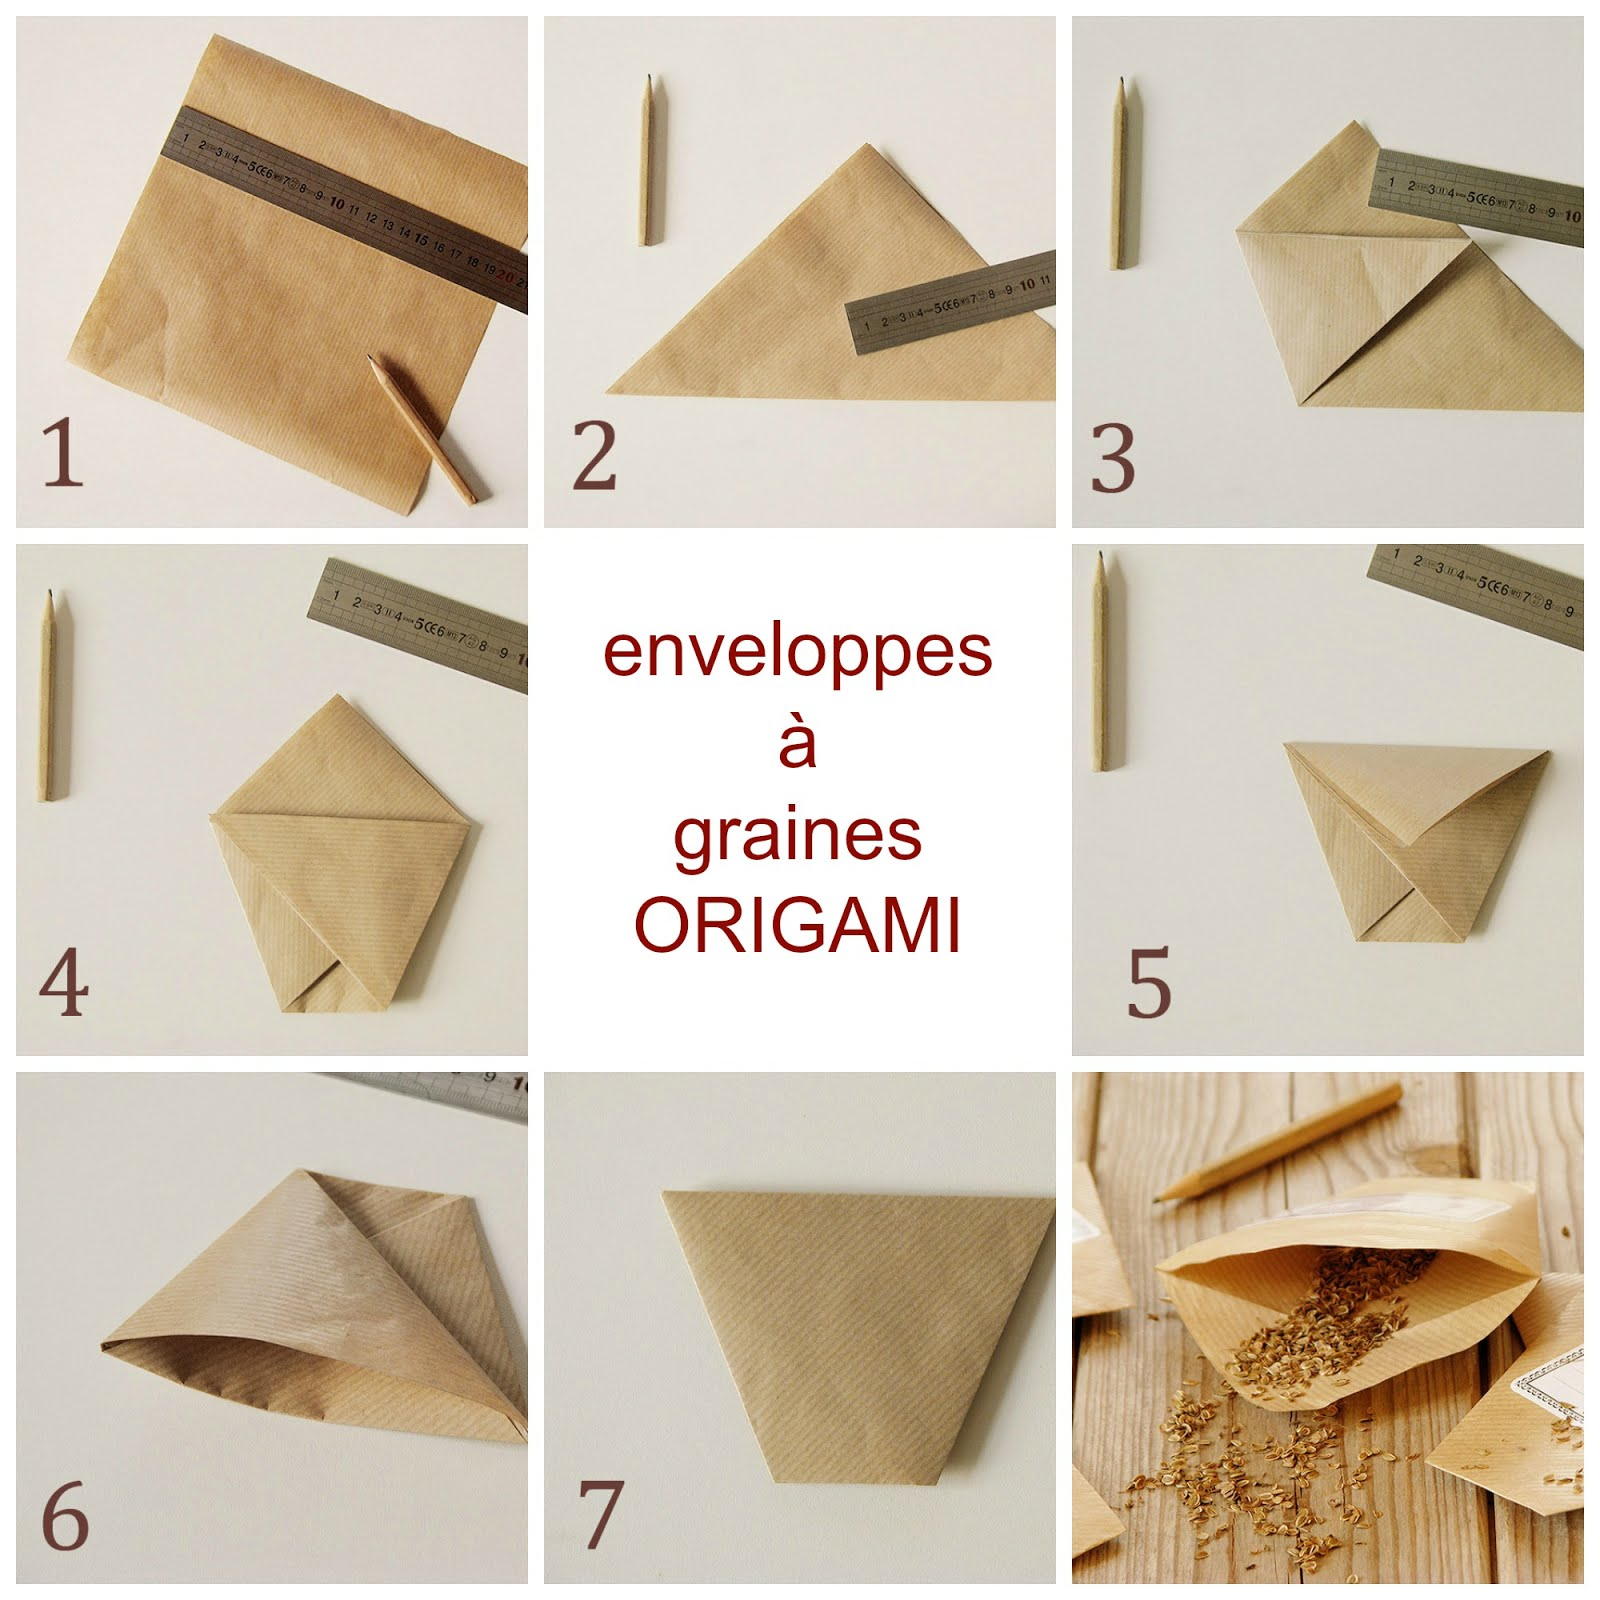 enveloppes a graines en origami recettes bio green. Black Bedroom Furniture Sets. Home Design Ideas